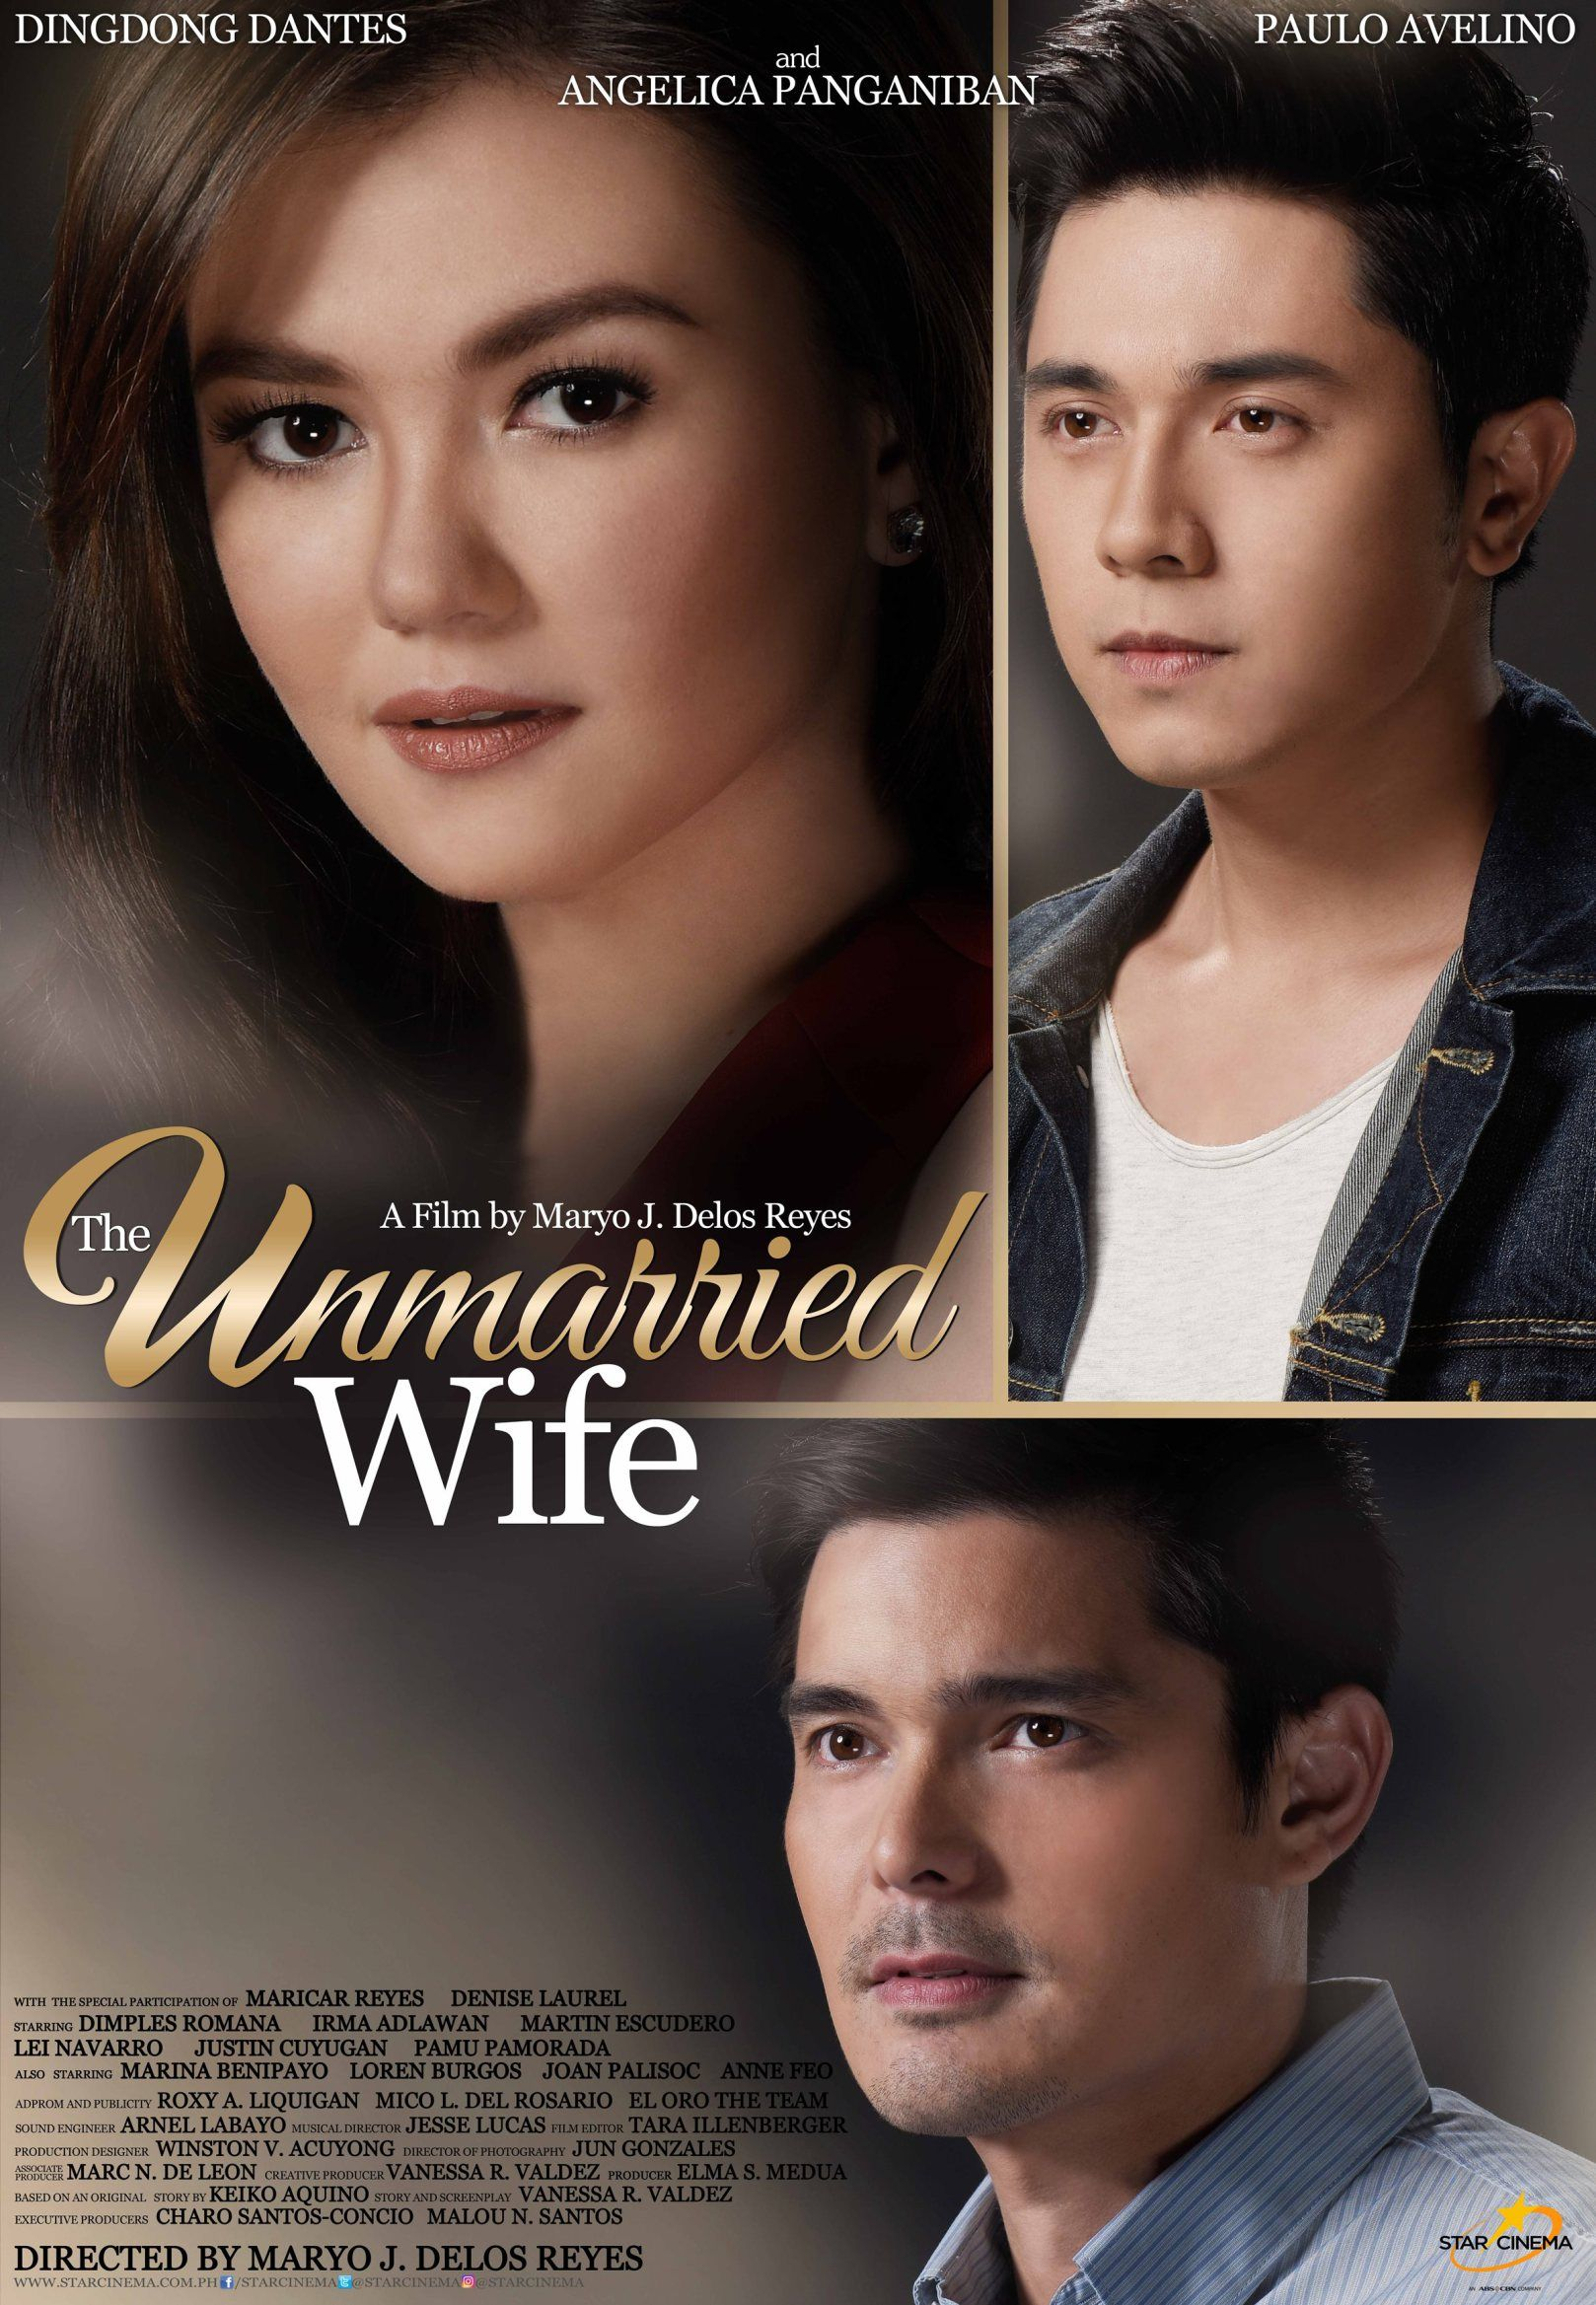 The Unmarried Wife 2016 Starring Dingdong Dantes Paulo Avelino Angelica Panganiban Pinoy Movies Wife Movies Movies Online